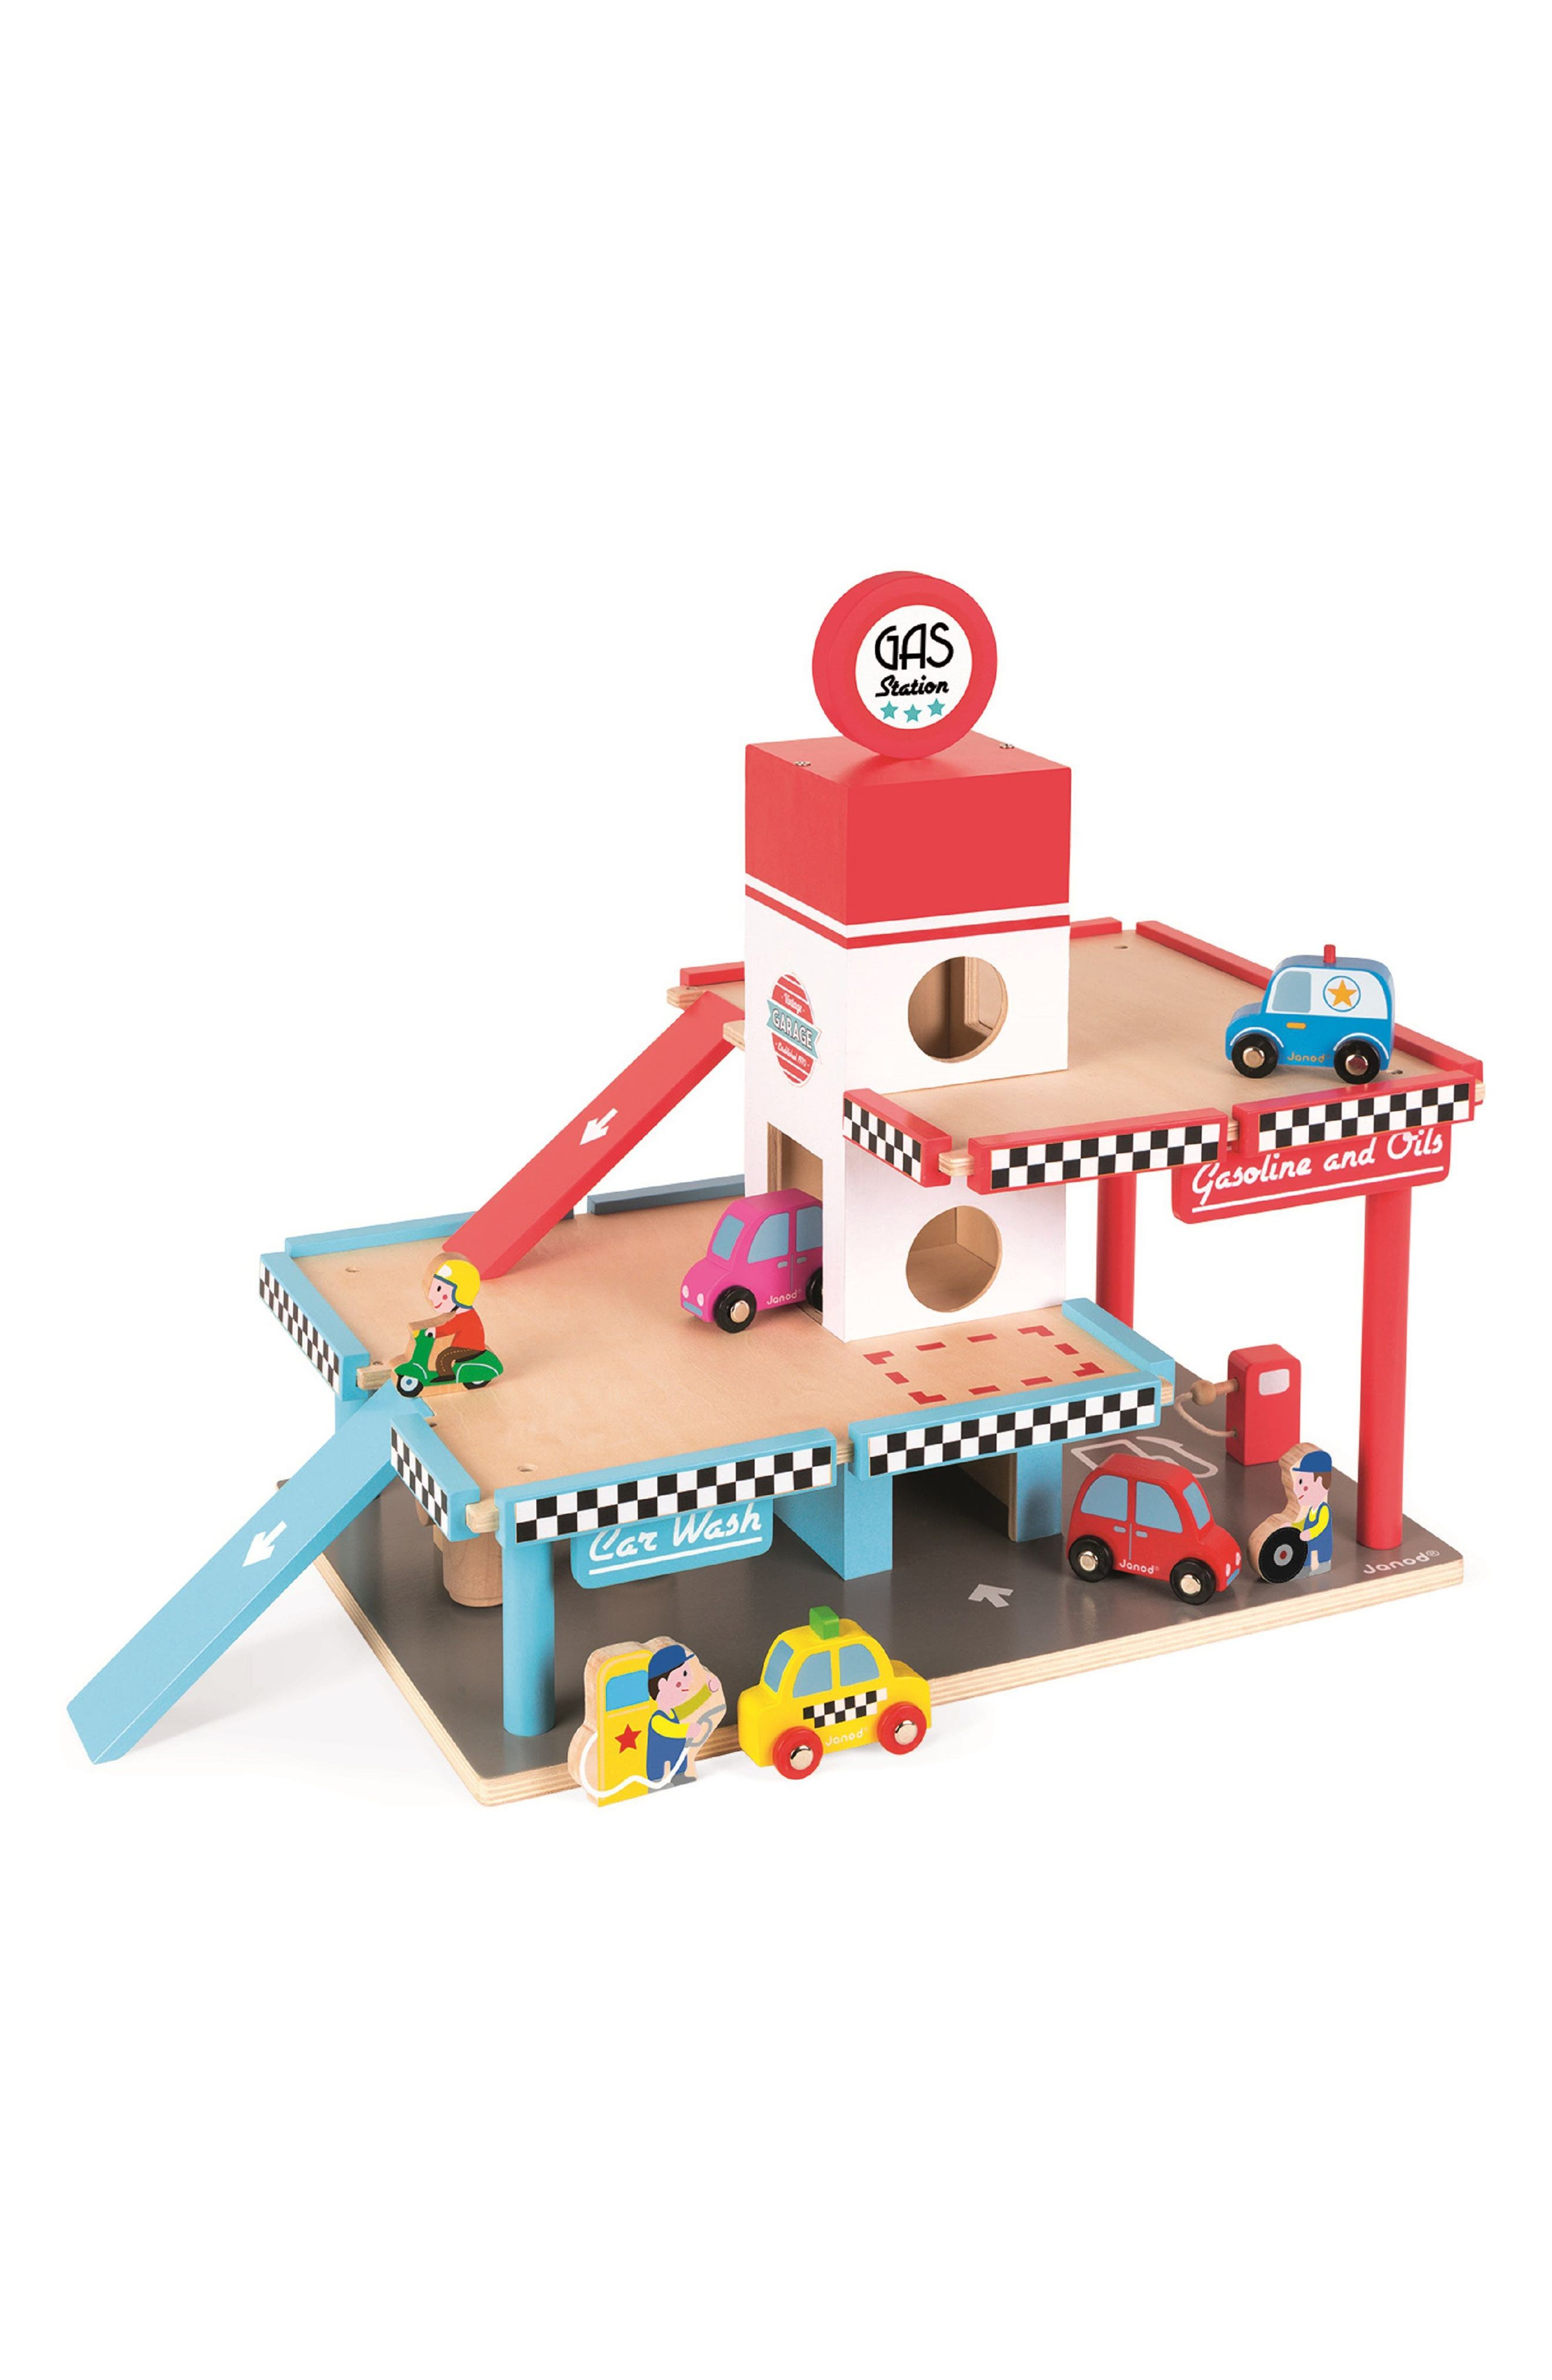 Boys Janod Gas Station Play Set